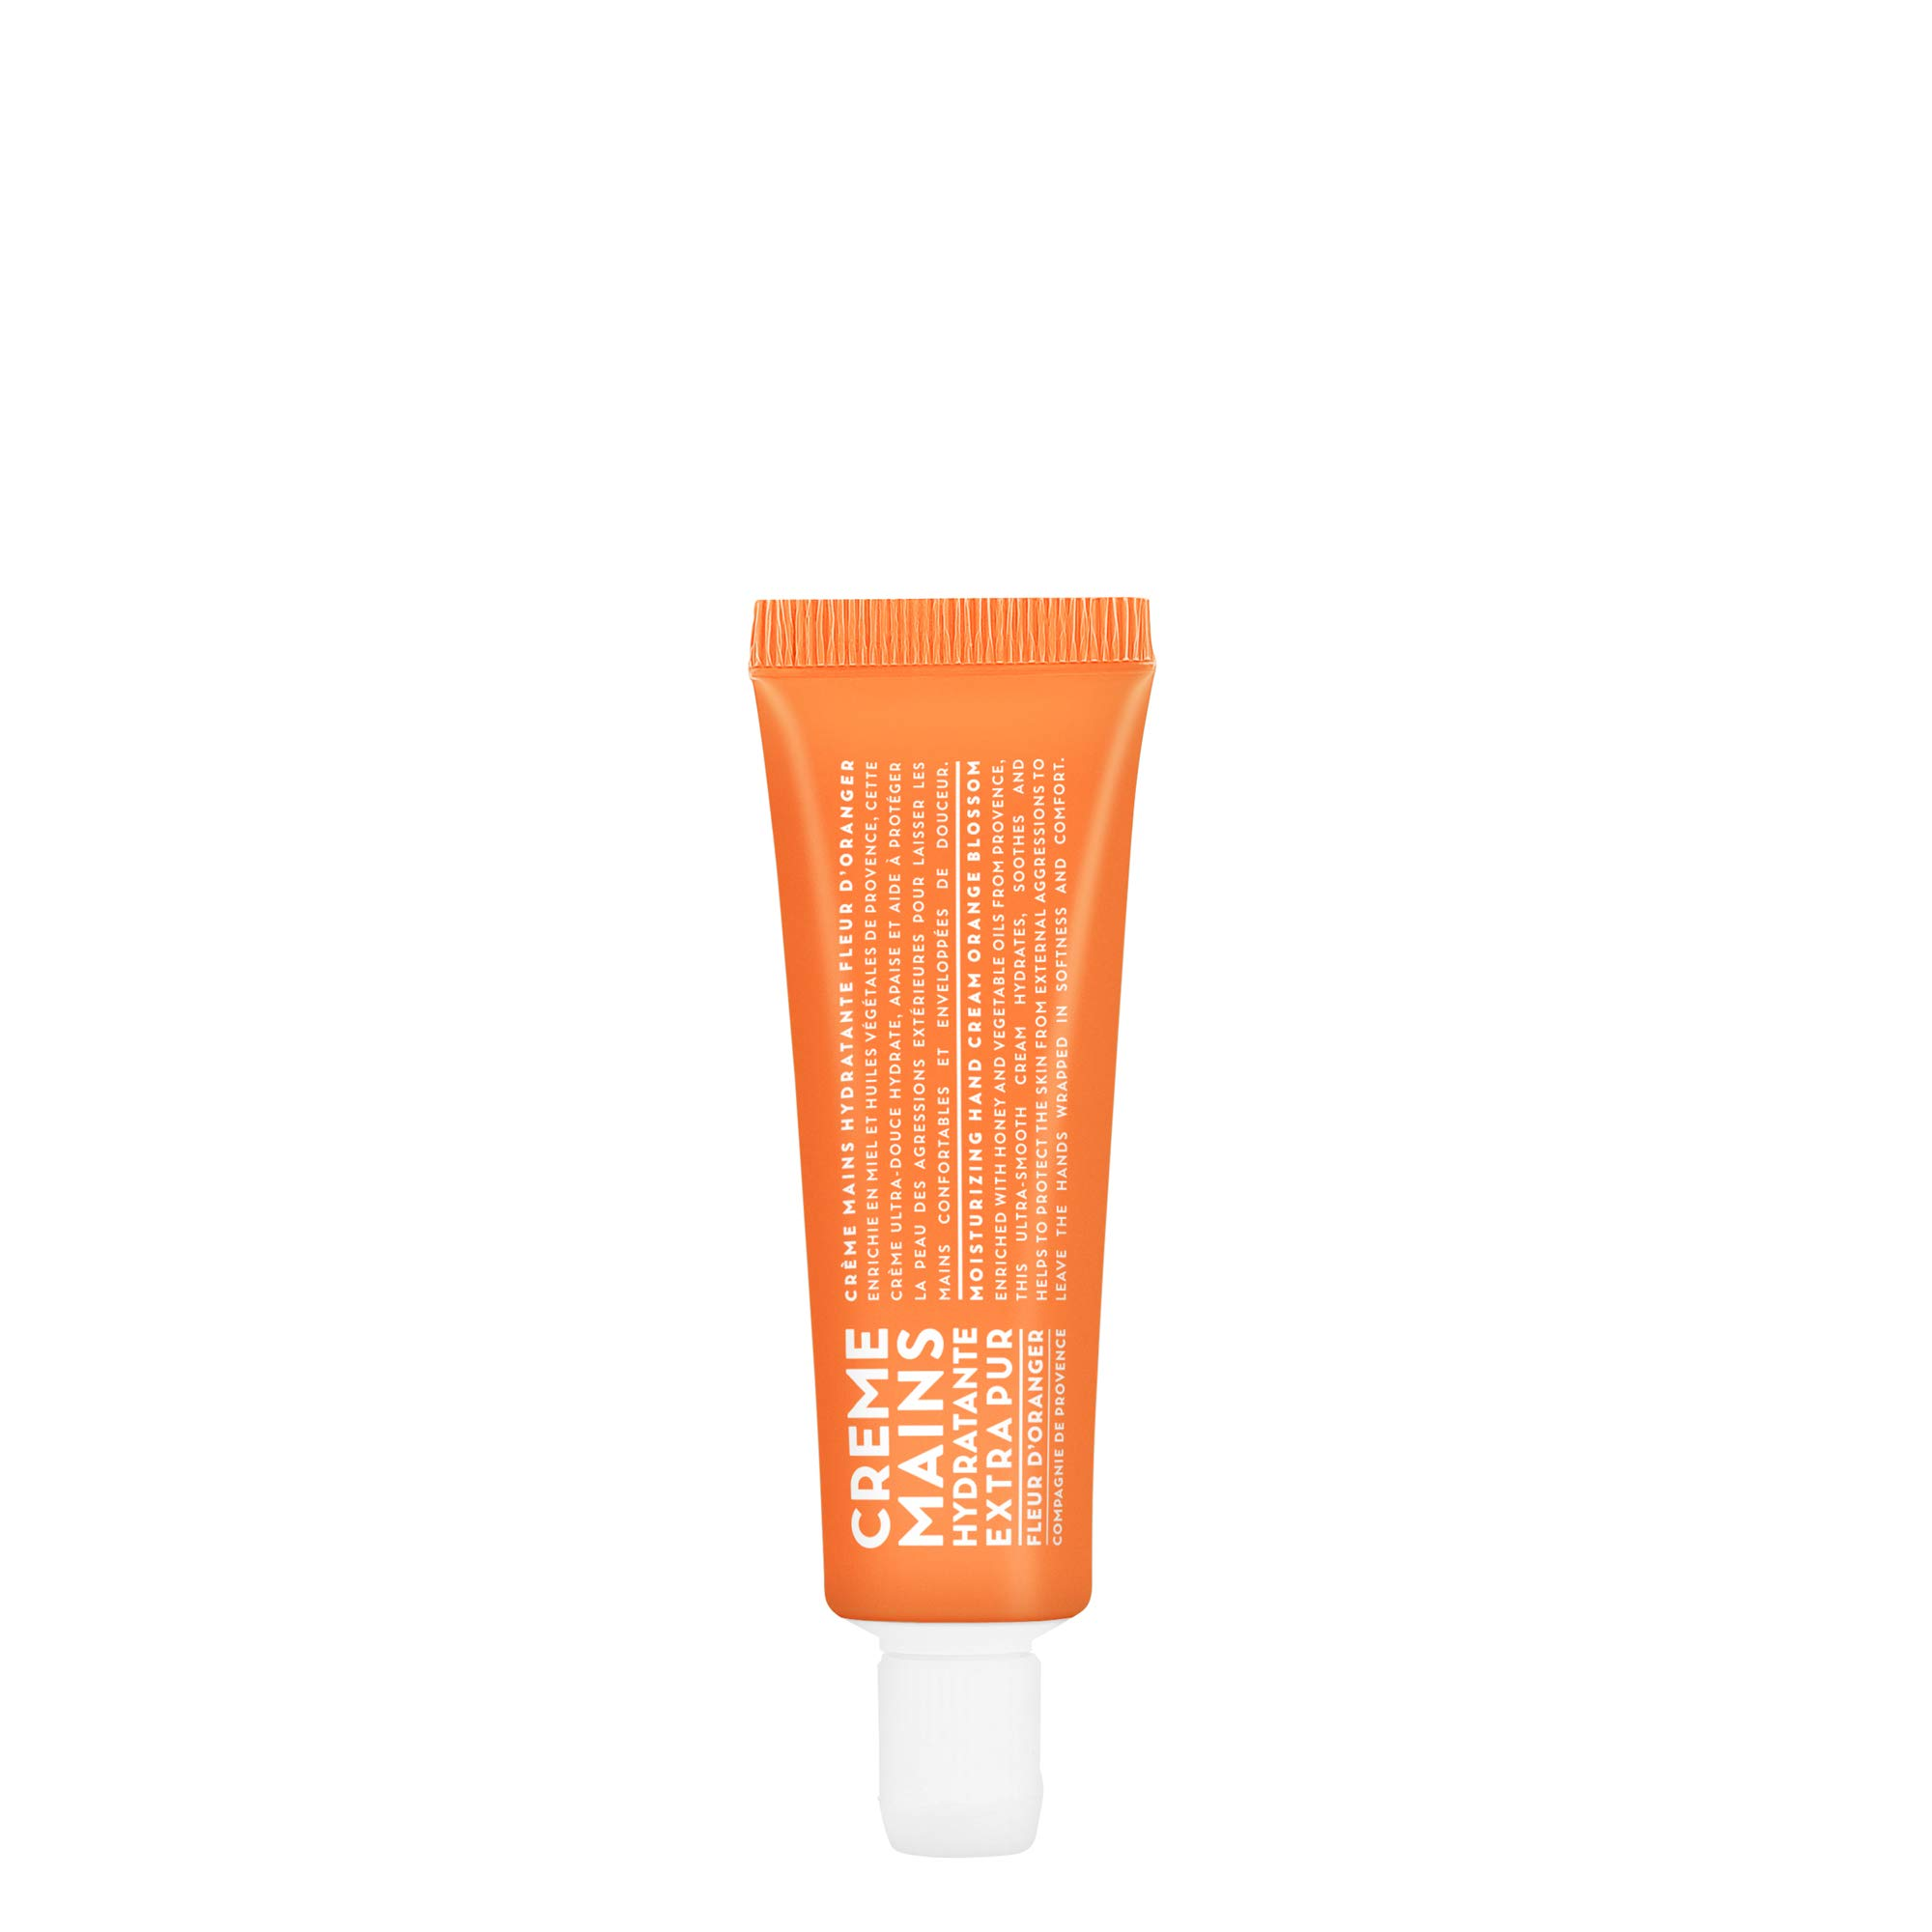 Compagnie de Provence Travel Hand Cream Extra Pure - Orange Blossom - 1 Fl Oz Tube